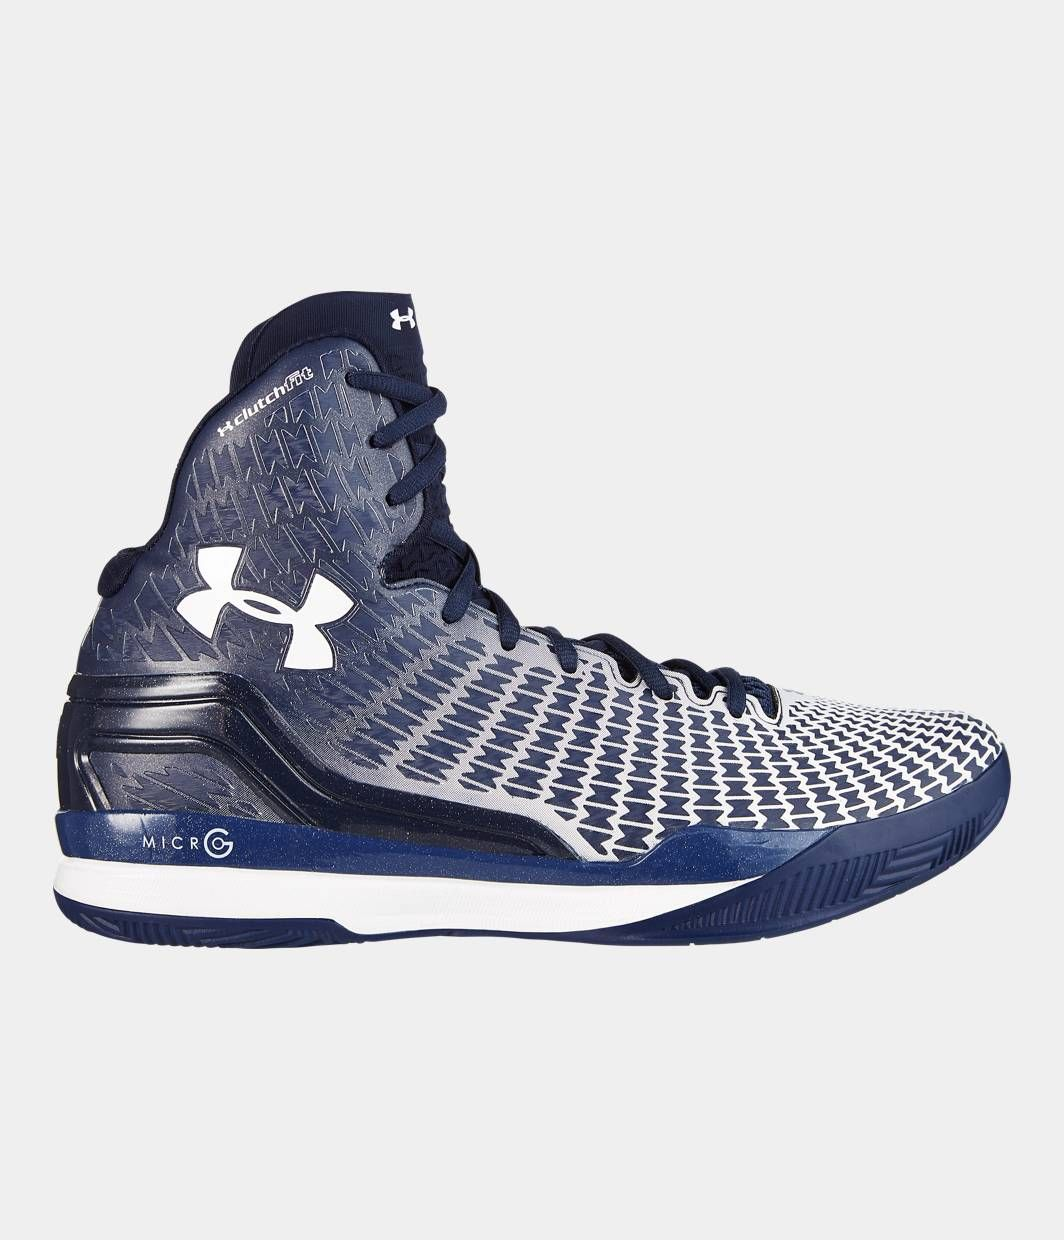 promo code f9eb5 b4c22 authentic mens ua clutchfit drive mid basketball shoes under armour us  3c314 a60ce